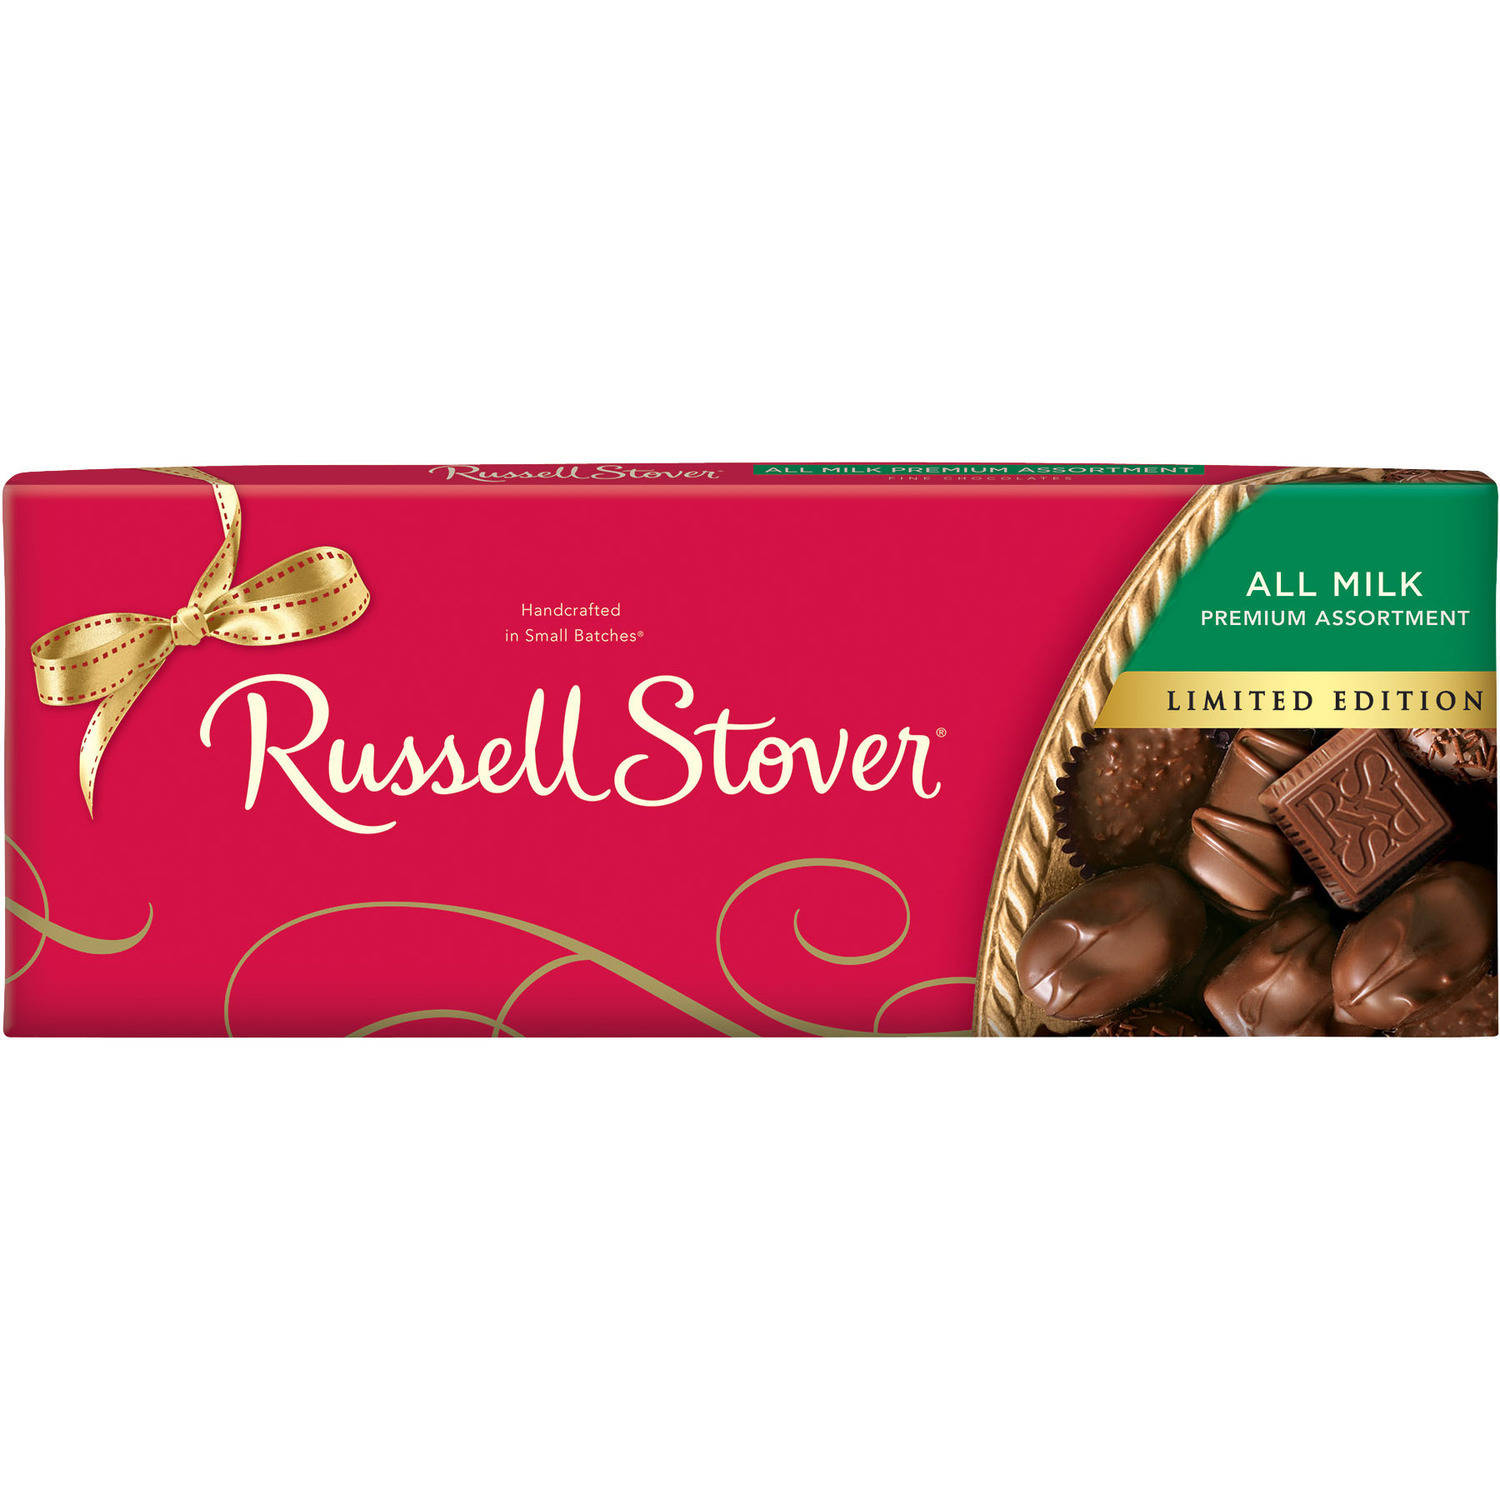 Russell Stover Limited Edition All Milk Chocolate Premium Assortment Holiday Gift, 11 oz